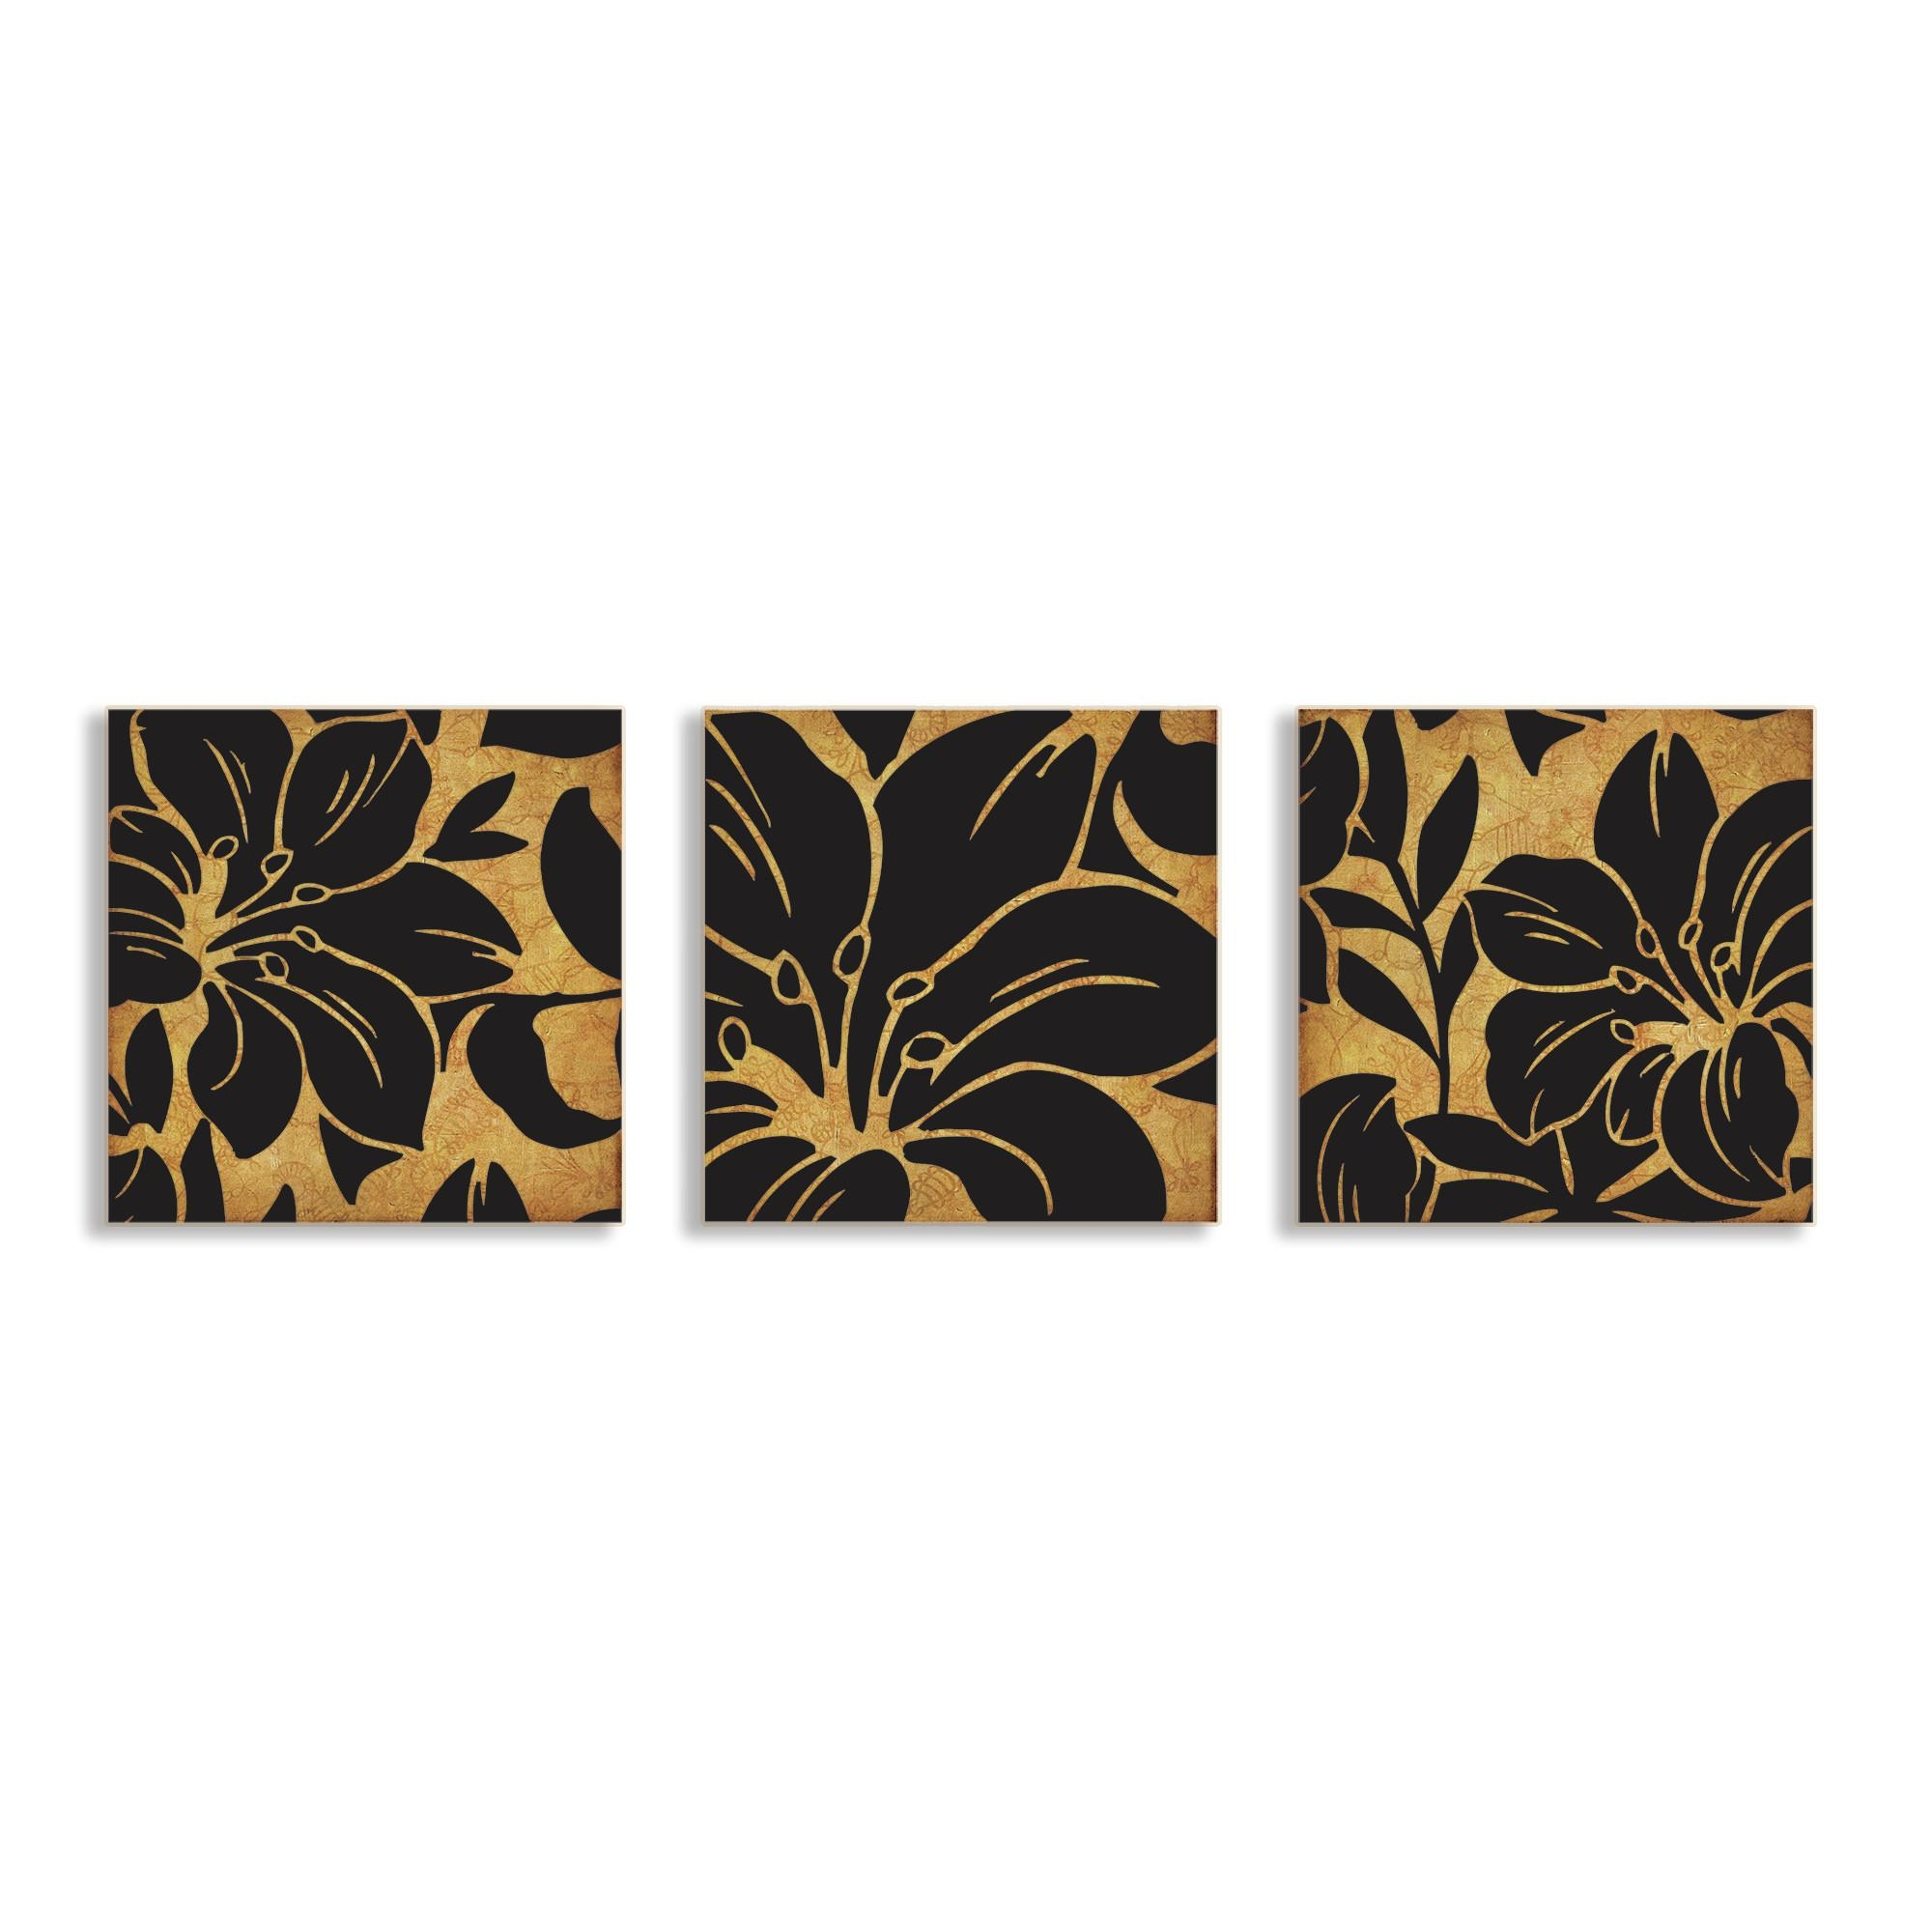 3 Piece Canvas Wall Art | Roselawnlutheran Intended For Canvas Wall Art 3 Piece Sets (View 12 of 20)